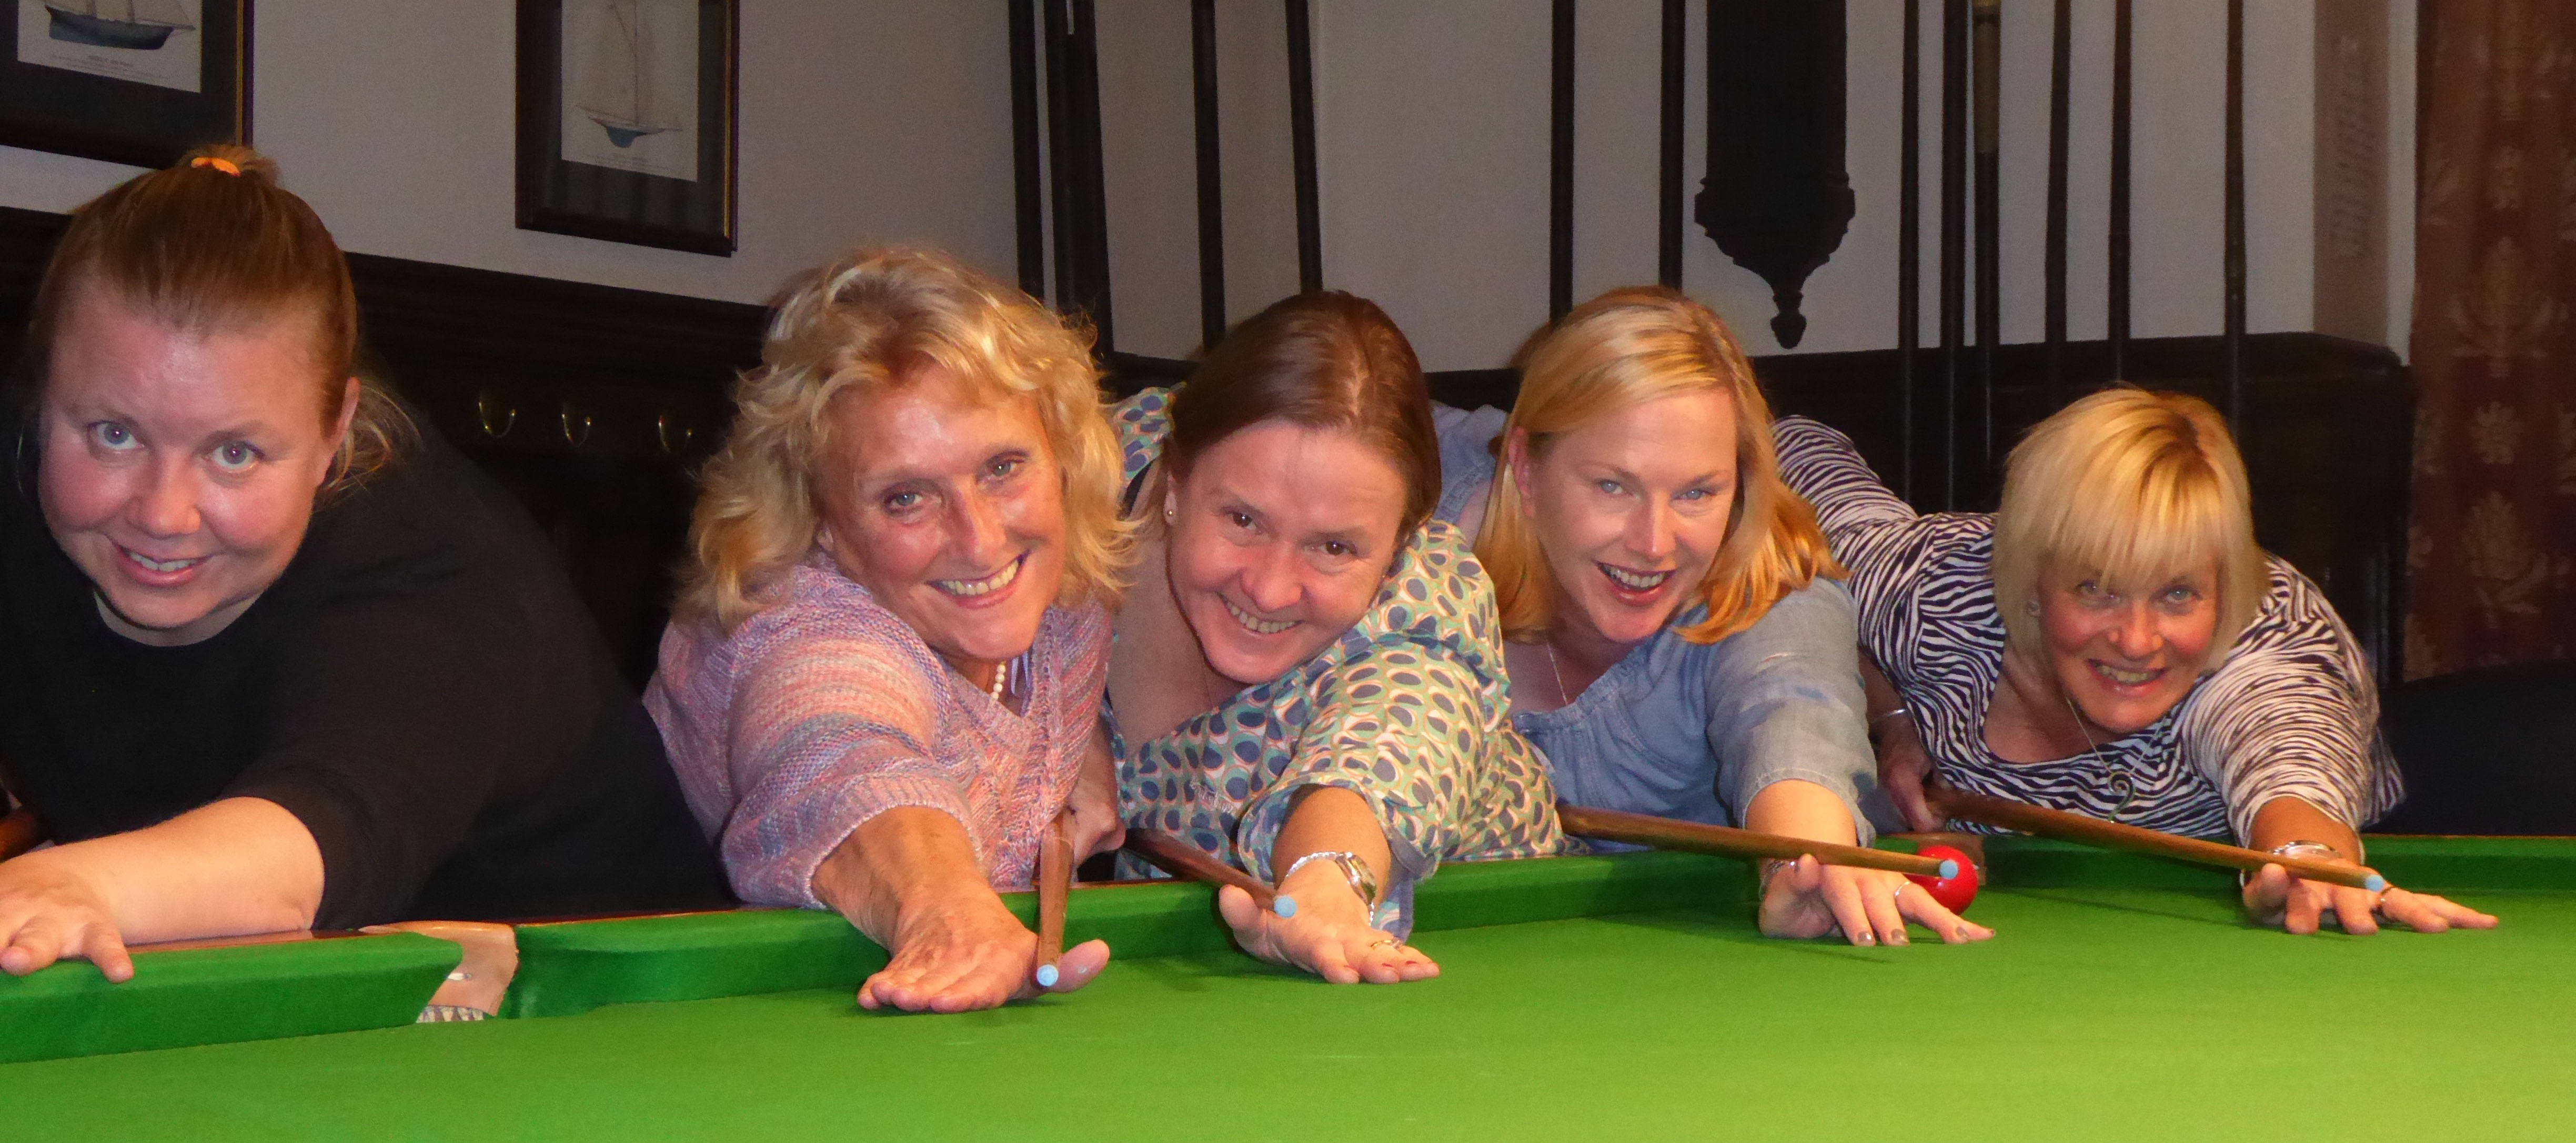 snooker girls.jpg